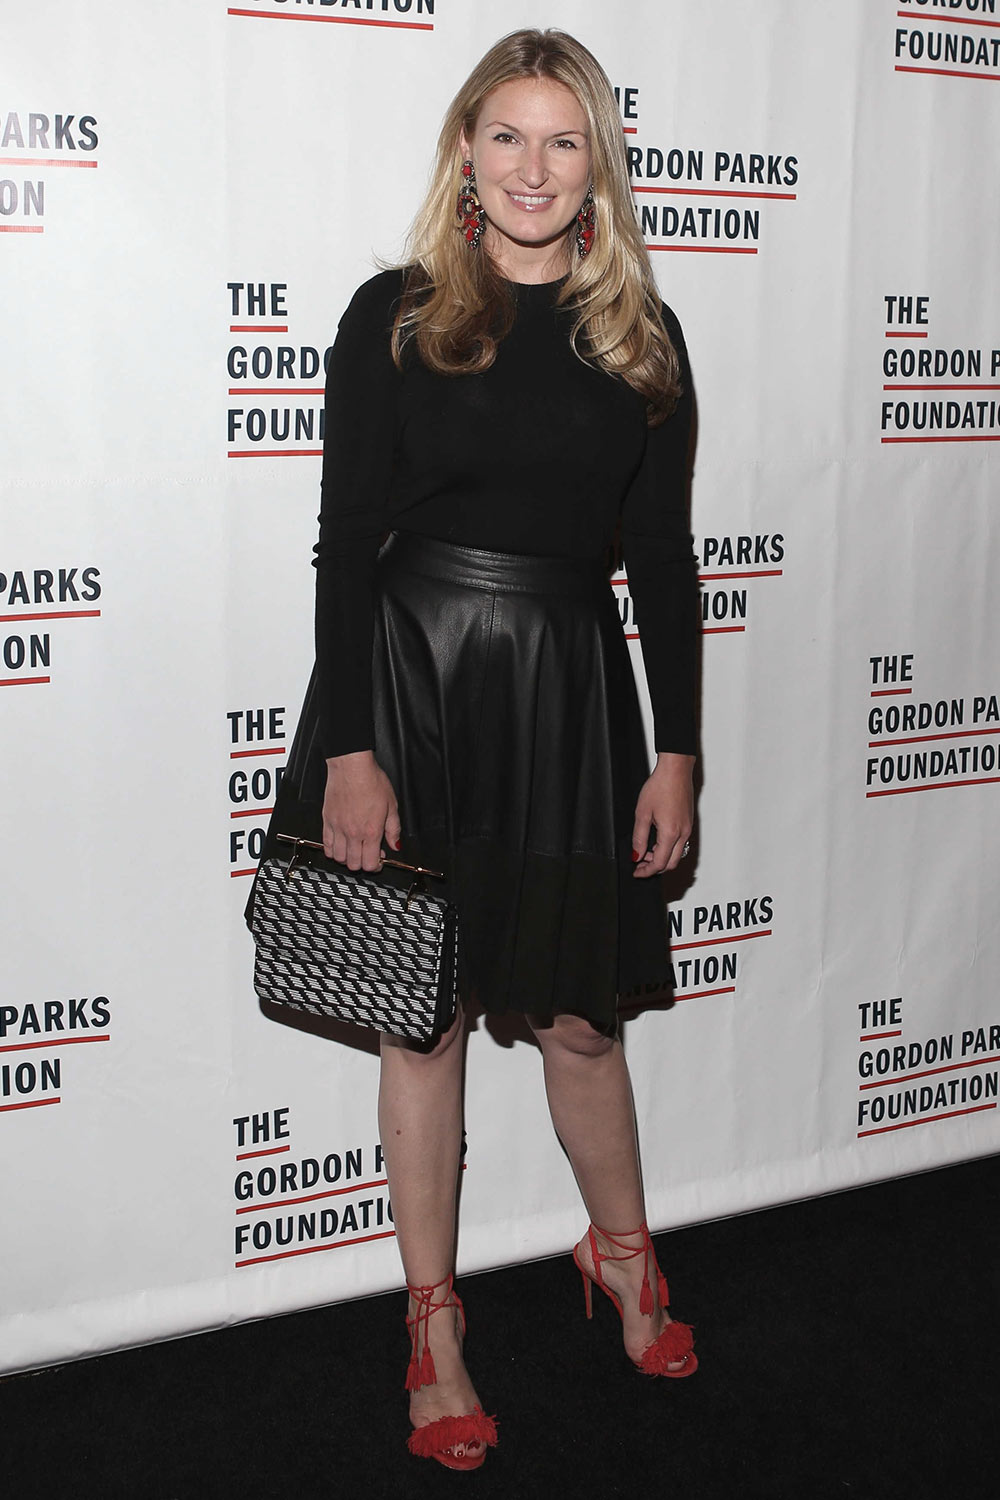 Sarah Arison attends The Gordon Parks Foundation Gala